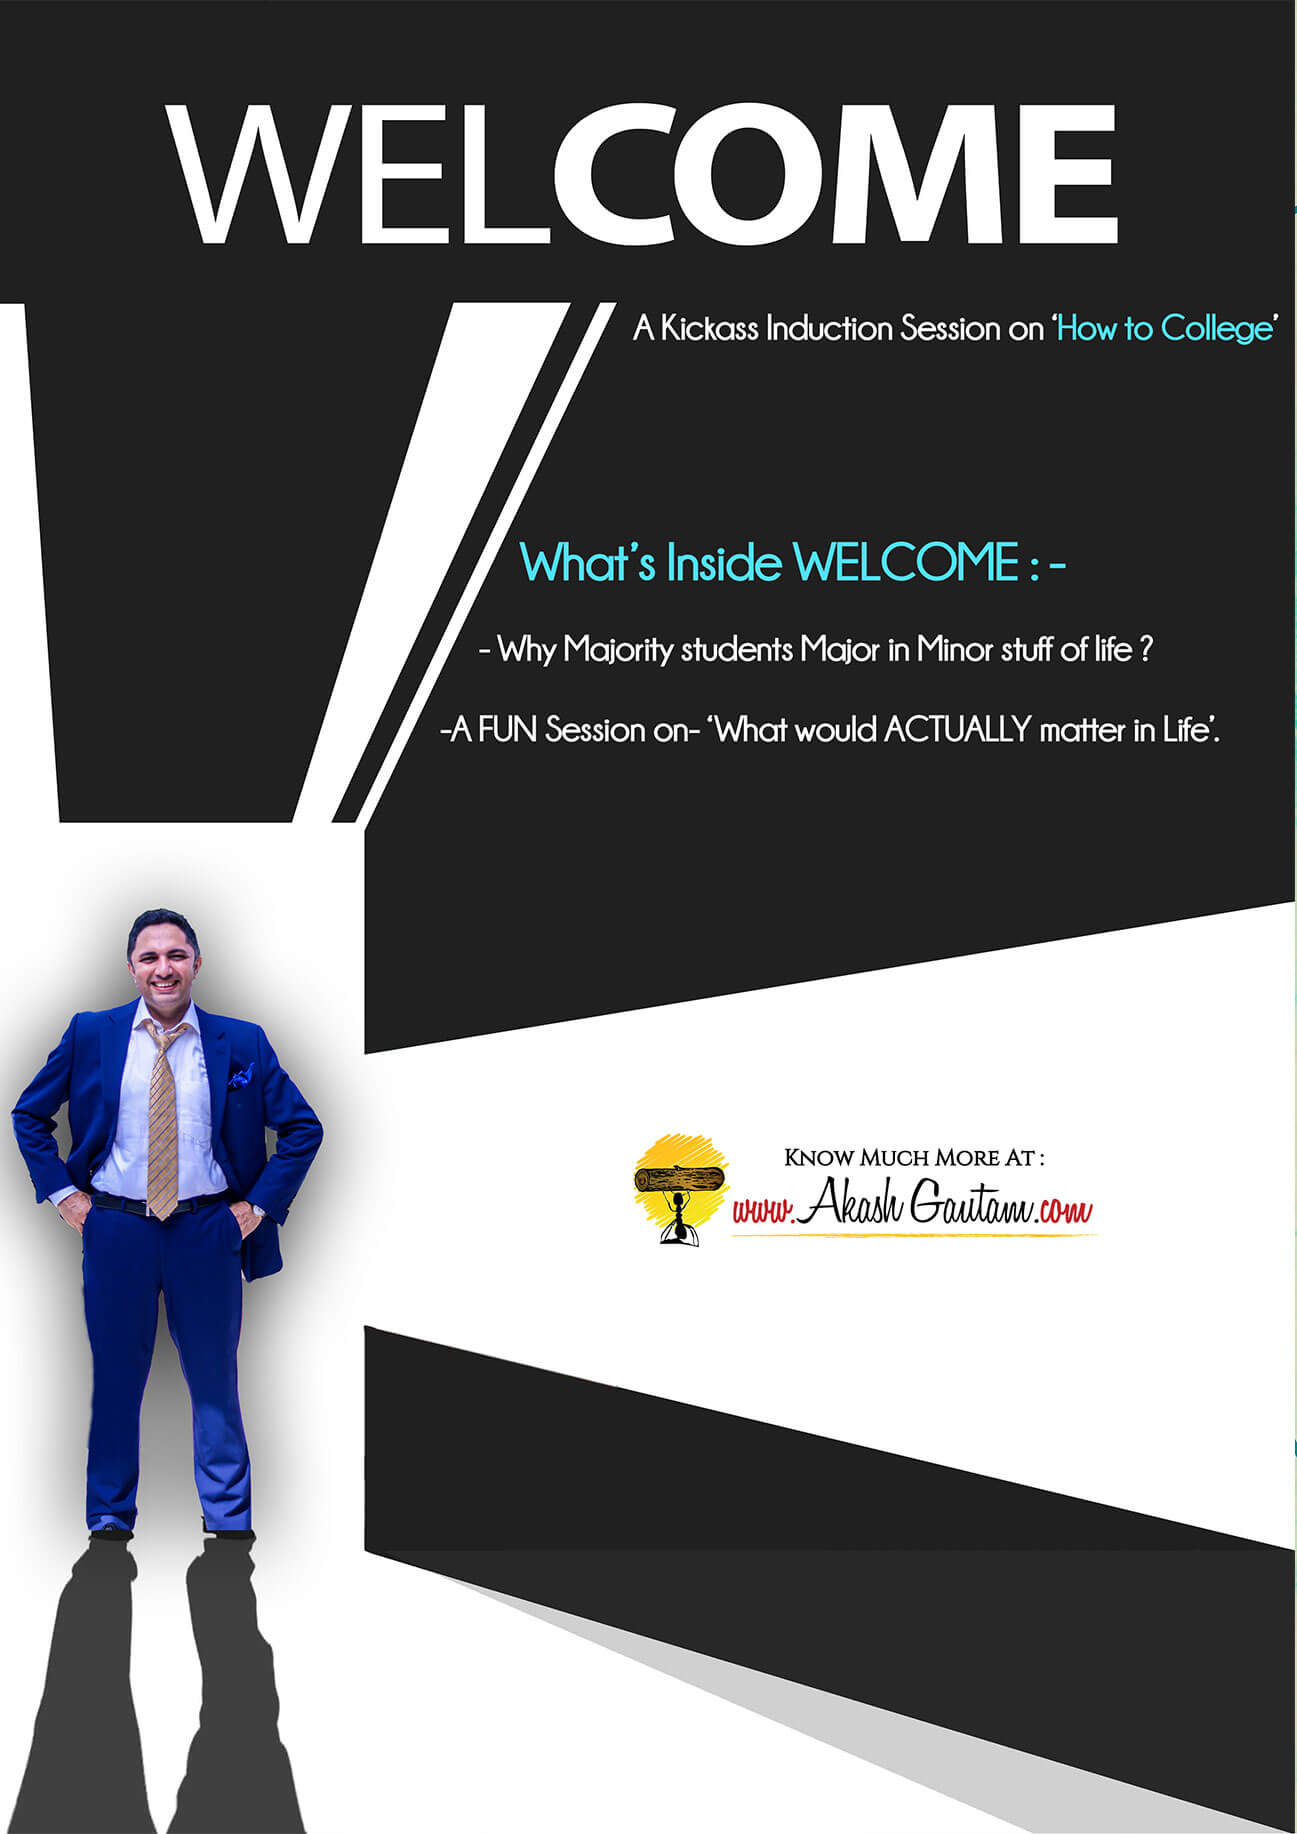 WELCOME is Induction session by motivational speaker akash gautam for MBA, Engineering, fresher students of colleges